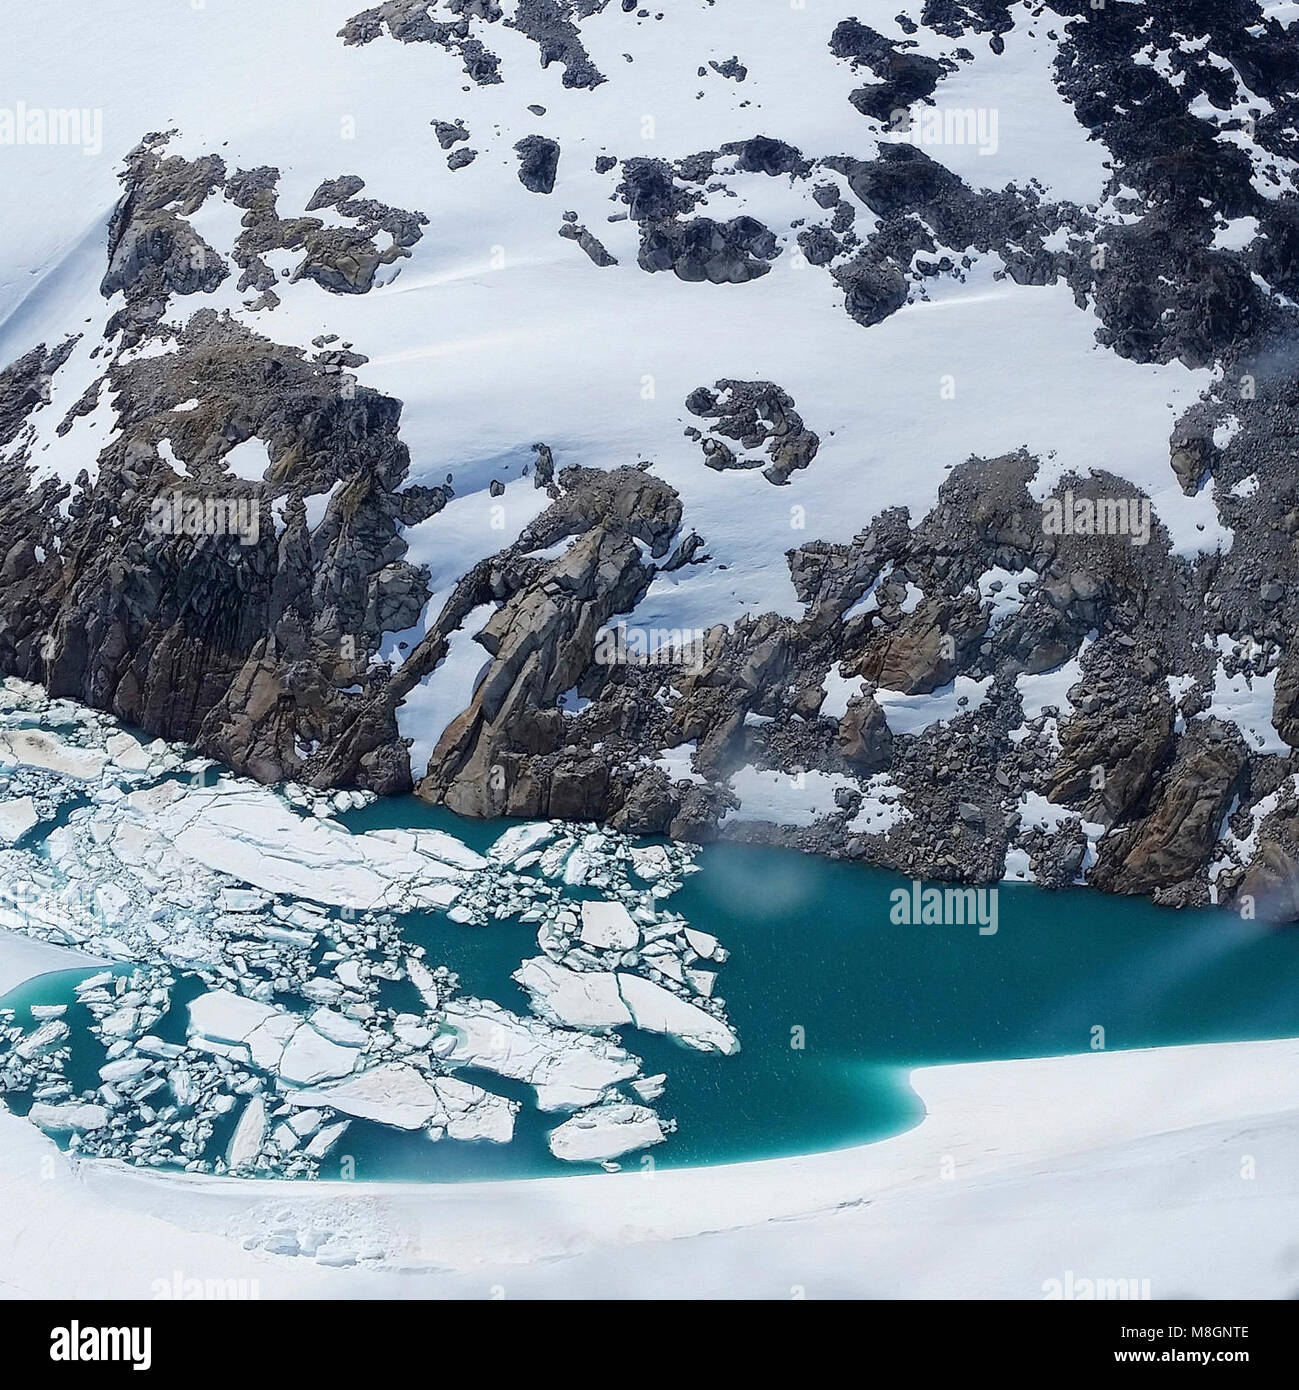 Chigmit Glaciers   .Icebergs float in a small blue lake forming from melting glaciers in the Chigmit Mountains - Stock Image